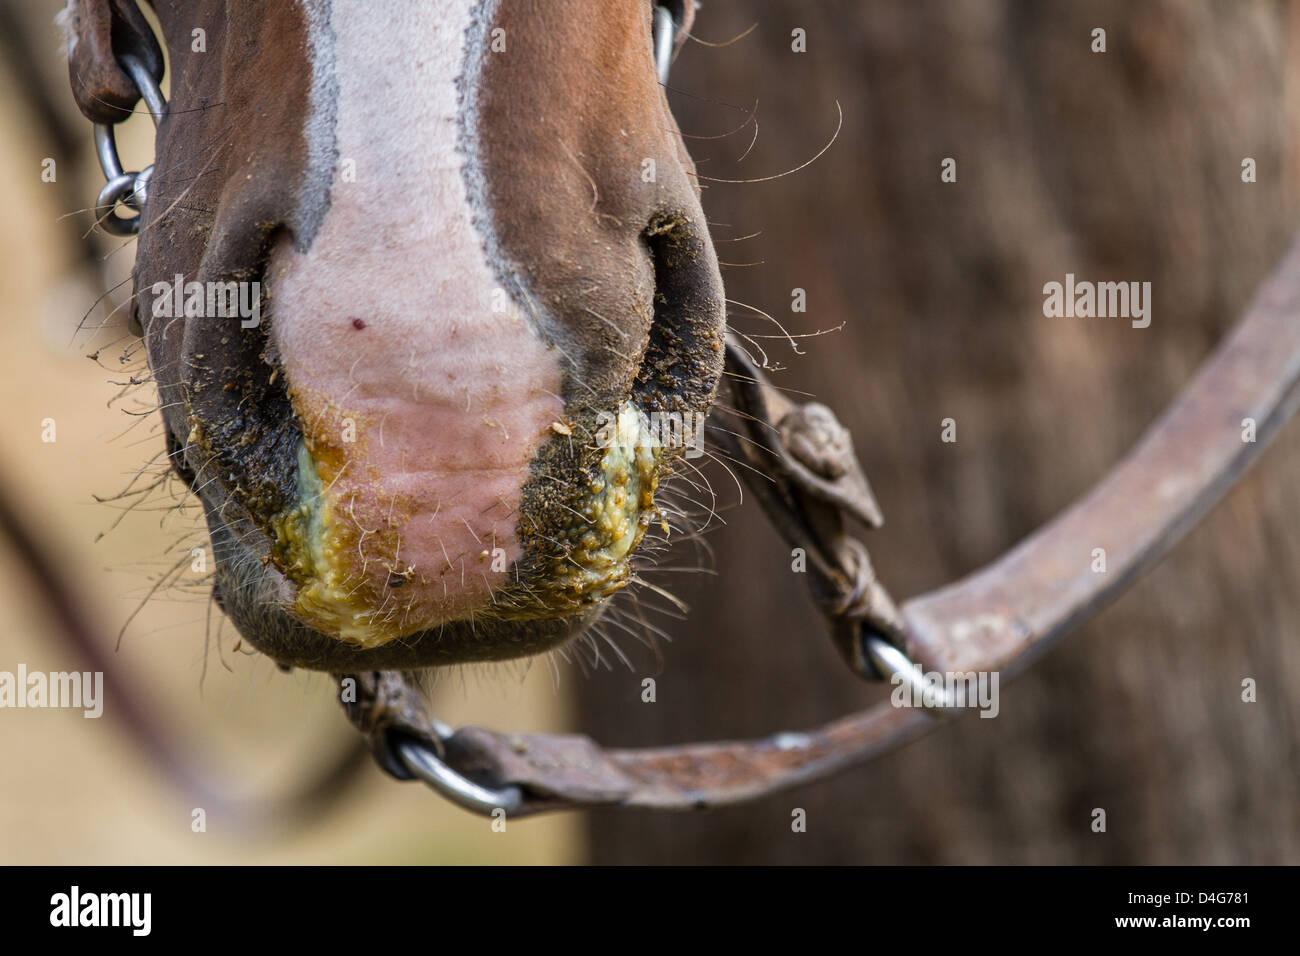 Close up of a horse sick with horse flu (Equine influenza) and a green runny nose snot, Patagonia, South America - Stock Image